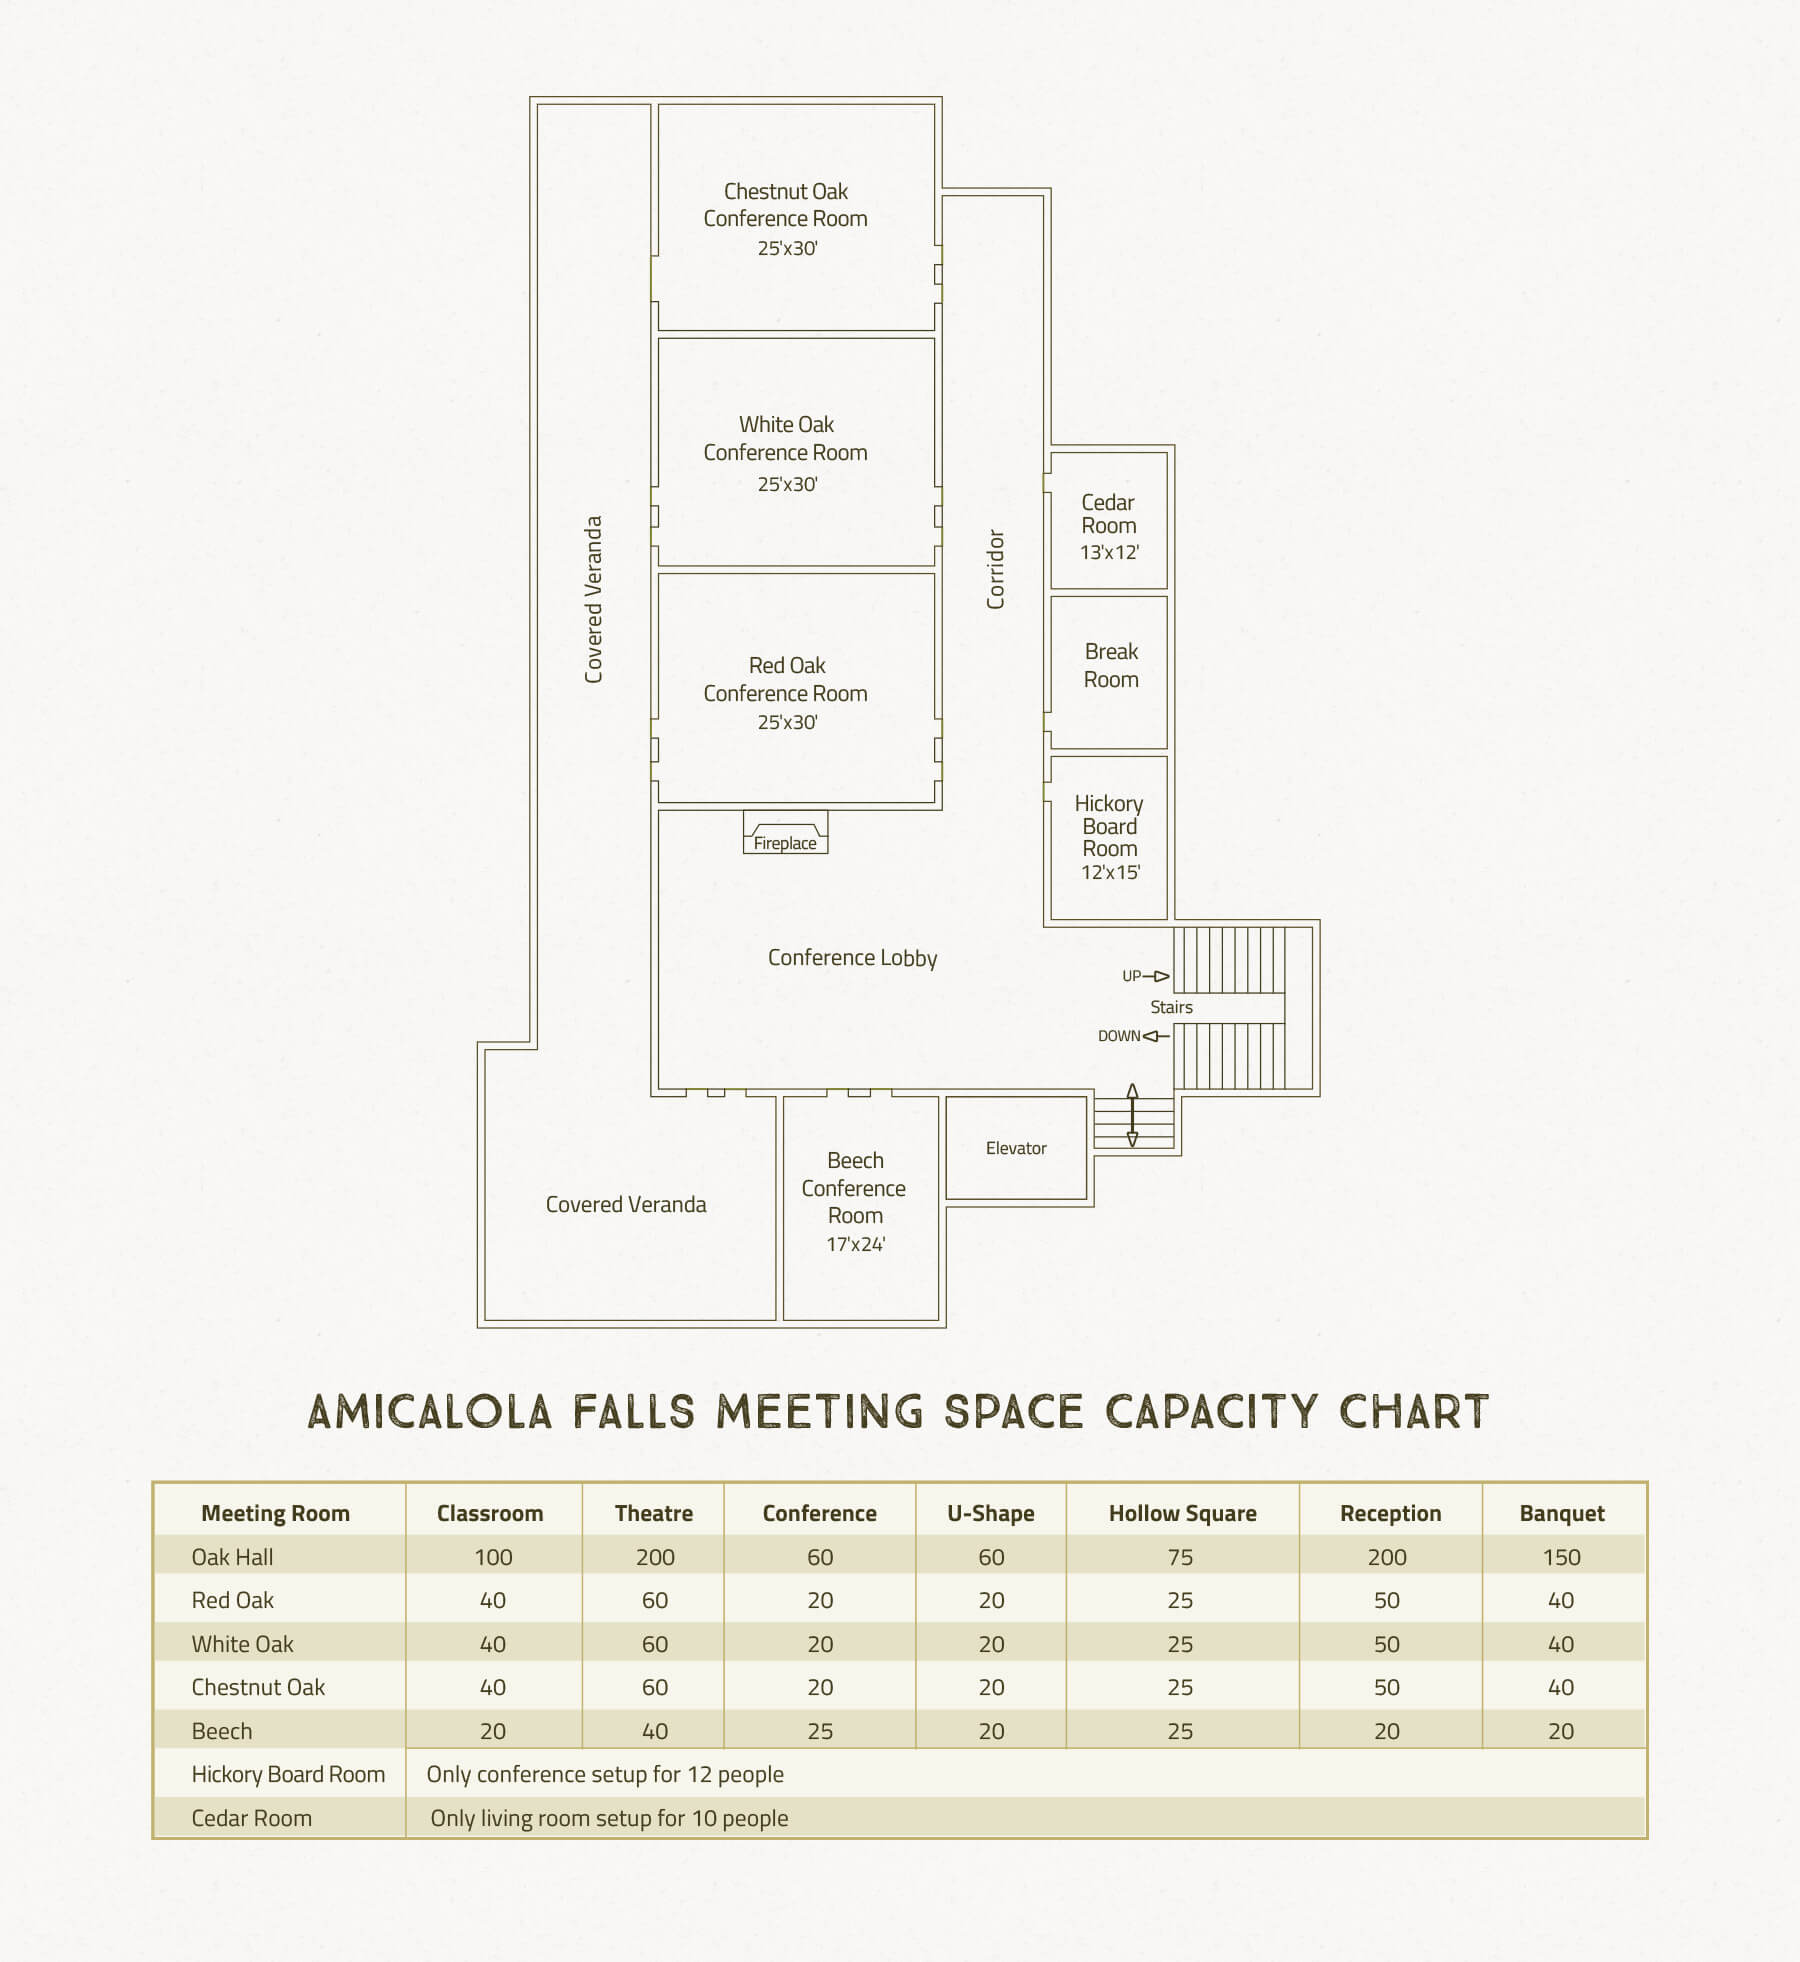 Amicalola Falls Adventure Lodge Meeting Events Facilities Capacity Chart